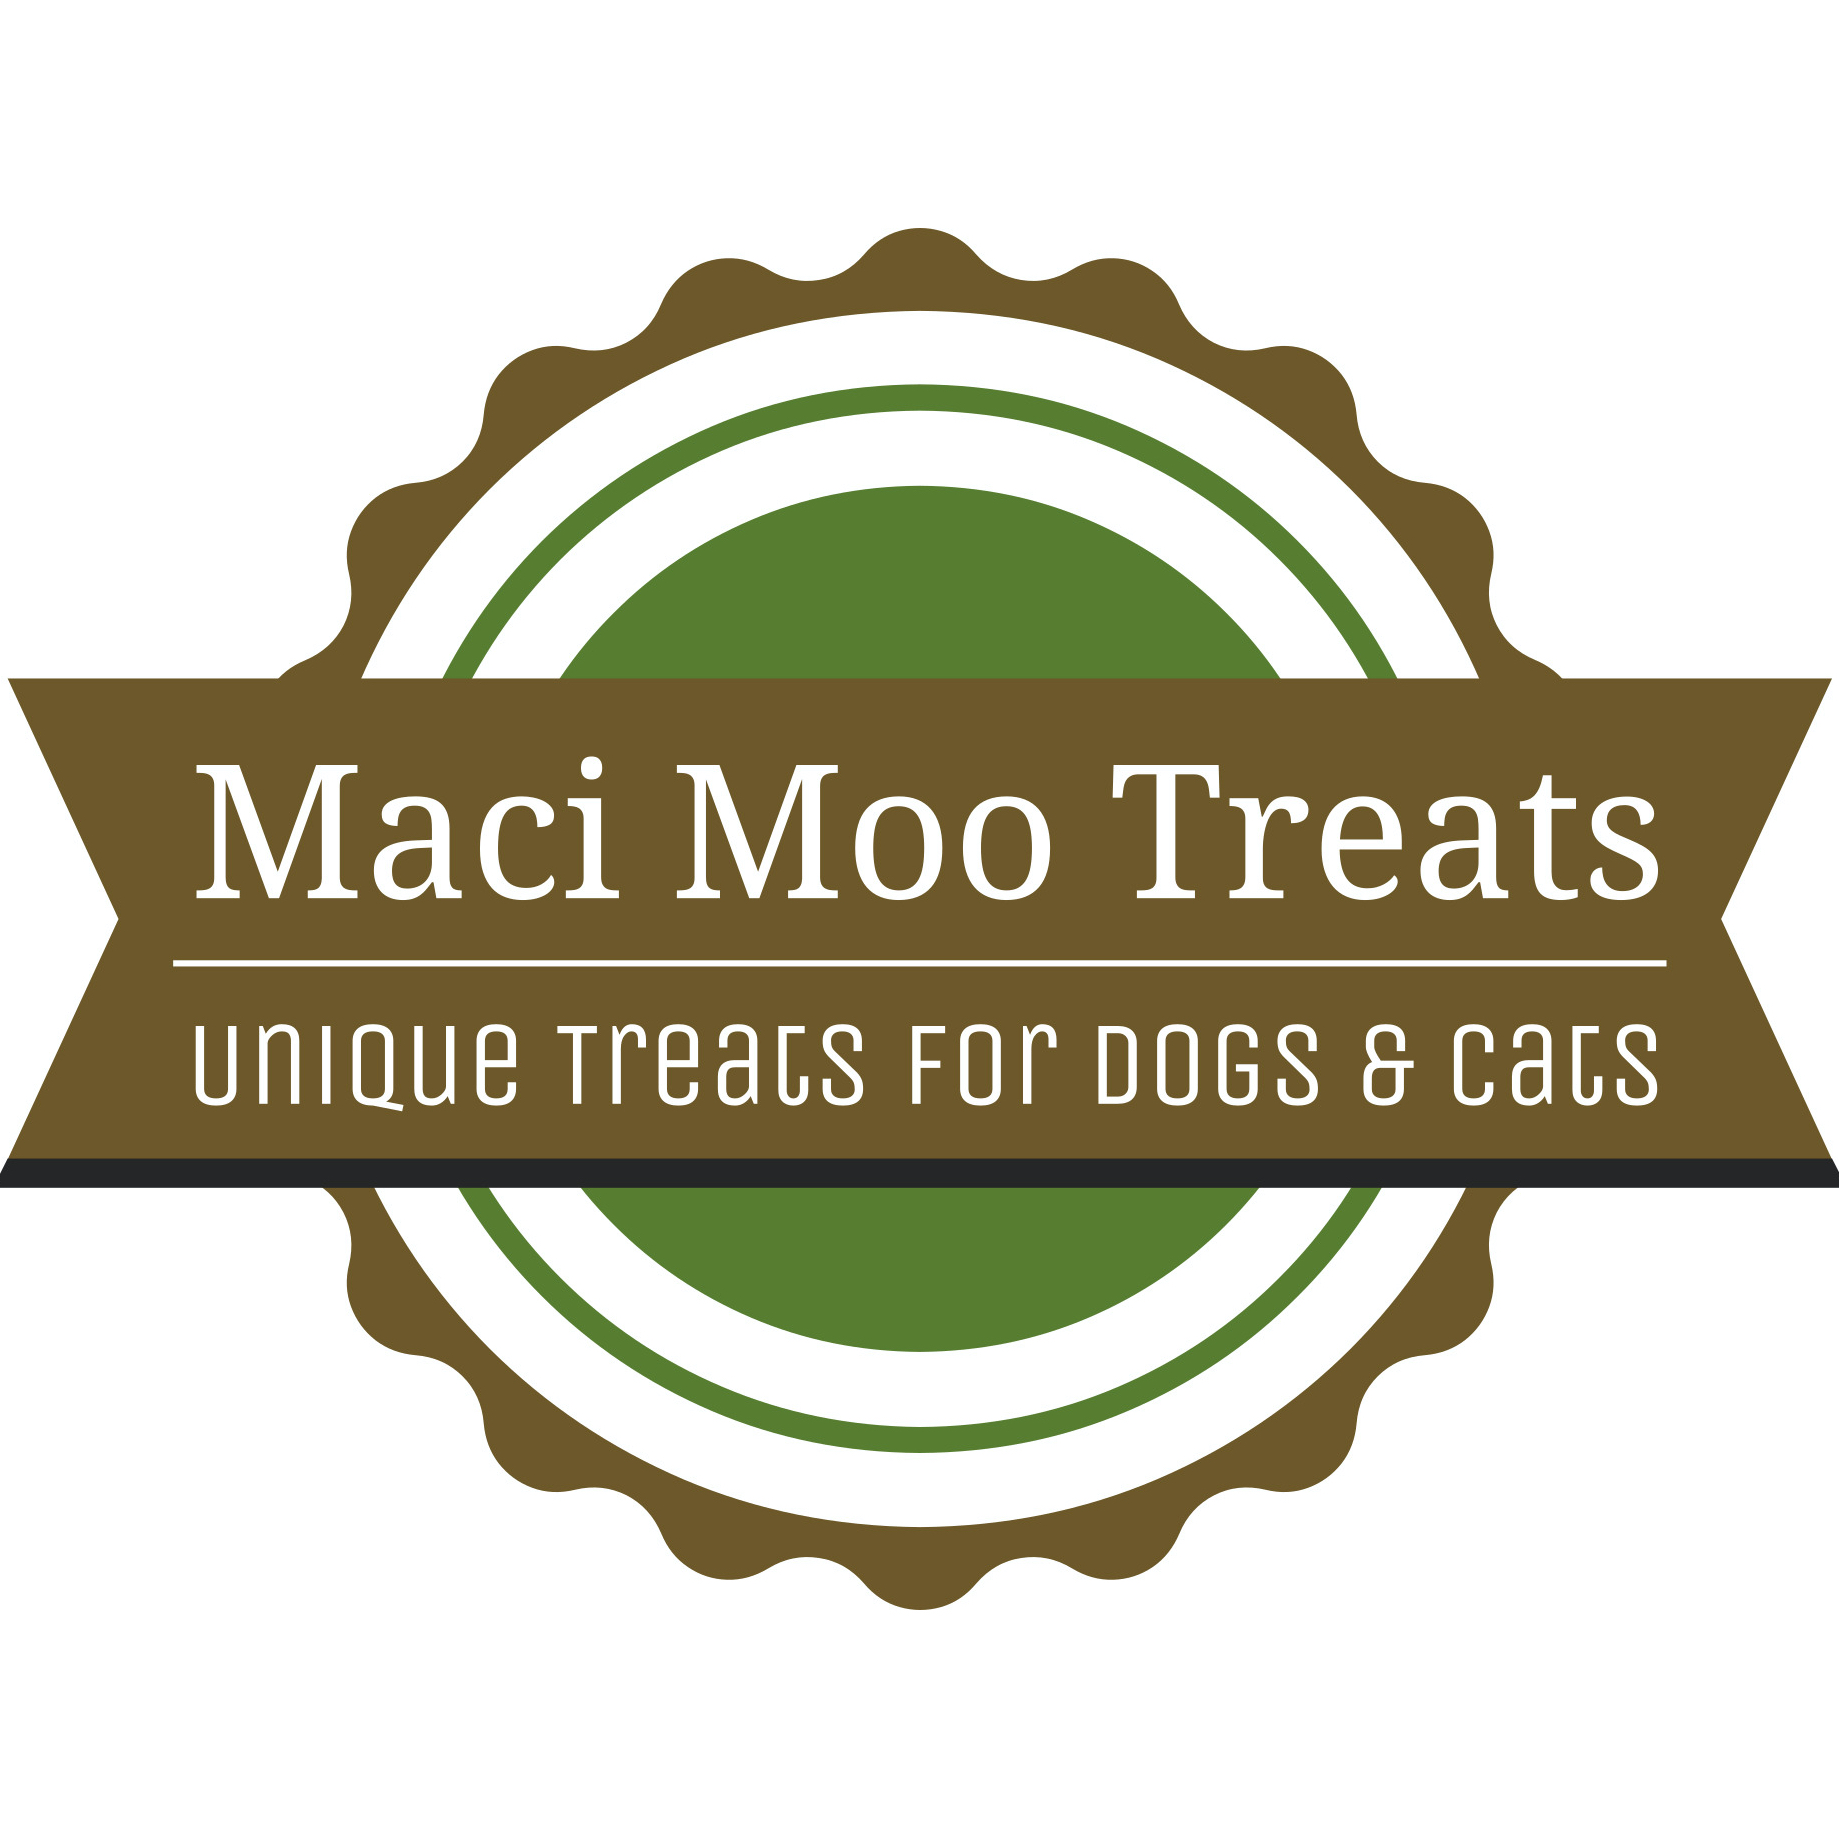 Maci Moo Treats